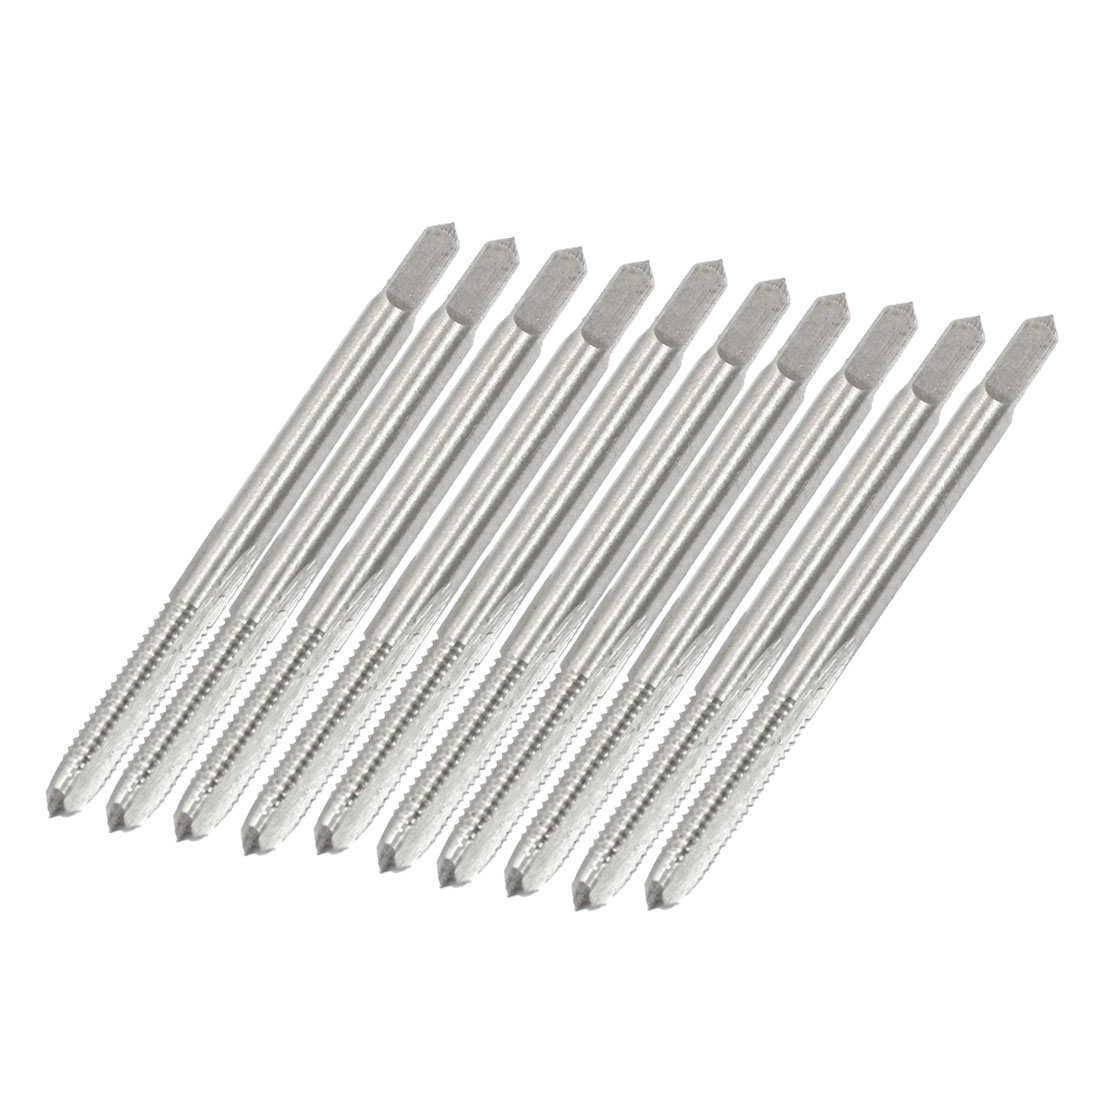 10 Pcs M4 4mm High Speed Steel HSS Machine Screw Thread Metric Taps